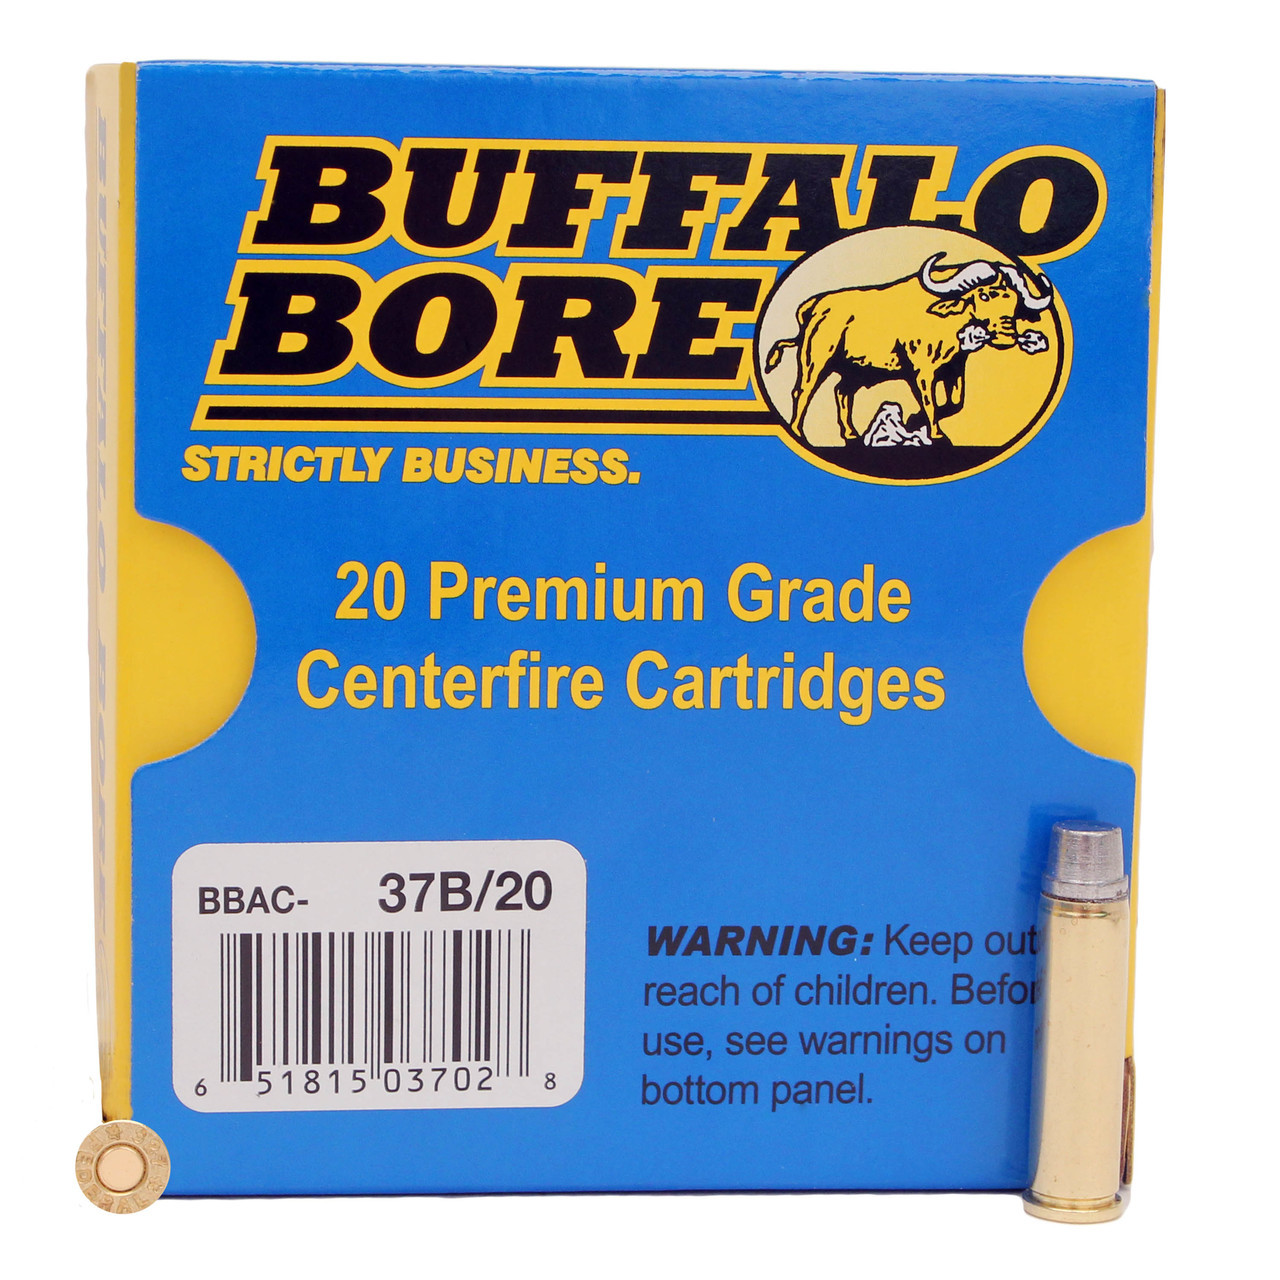 Buffalo Bore Ammunition Outdoorsman 327 Federal Magnum 130 Grain Hard Cast  Lead Semi-Wadcutter Box of 20, UPC :651815037028